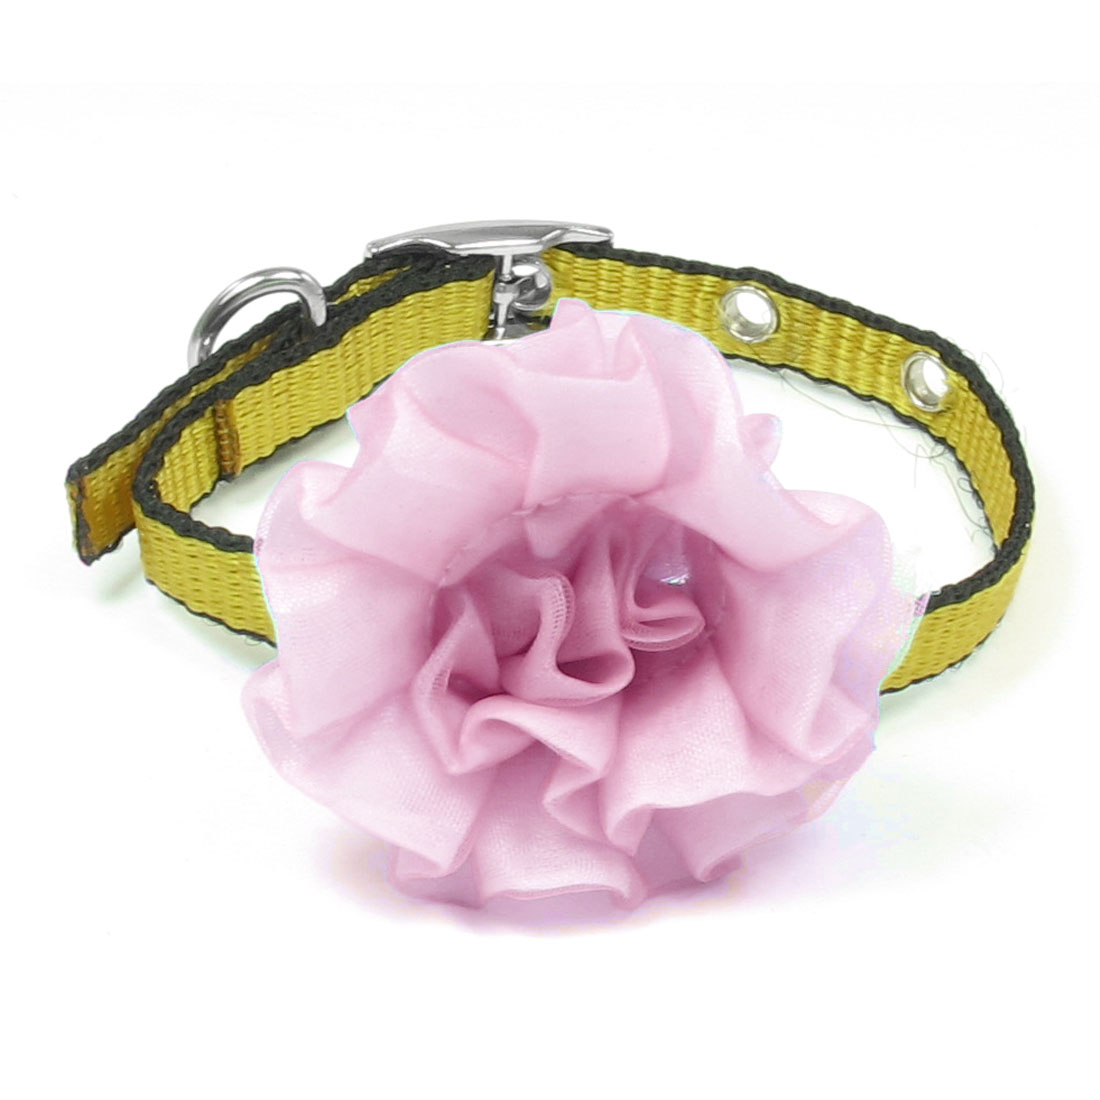 Single Prong Buckle Pink Flower Decor Yellow Black Nylon Pet Collar Necklace